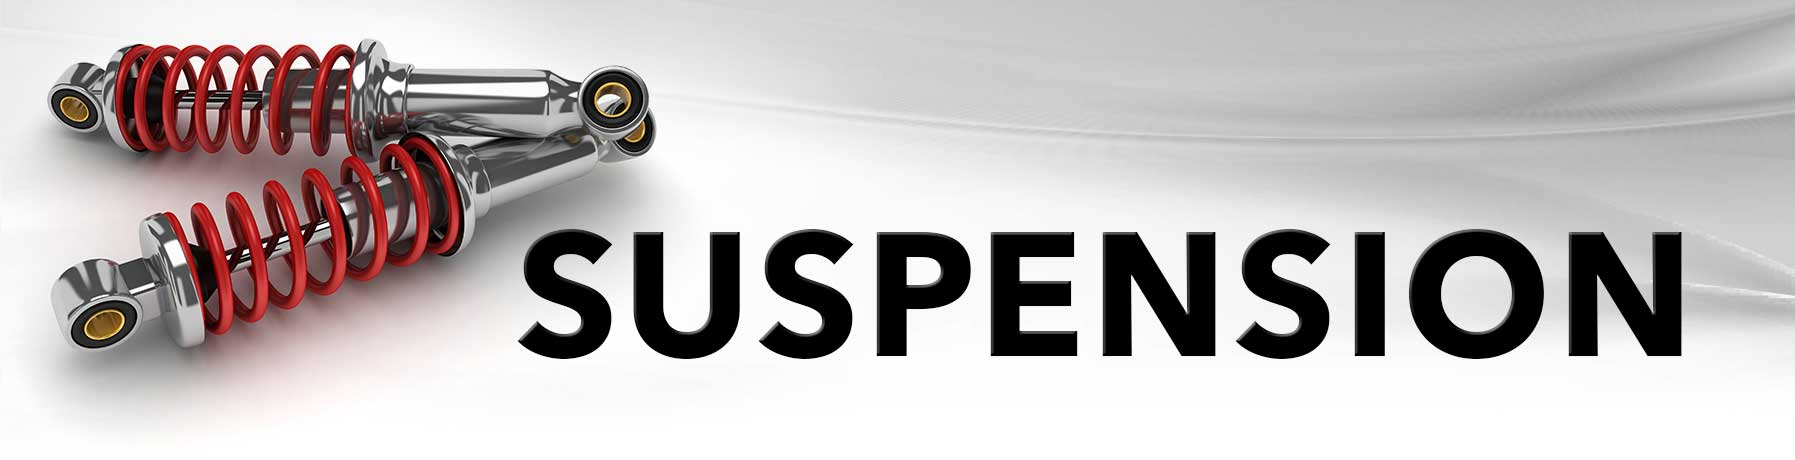 Suspension repair banner image with picture of suspension components